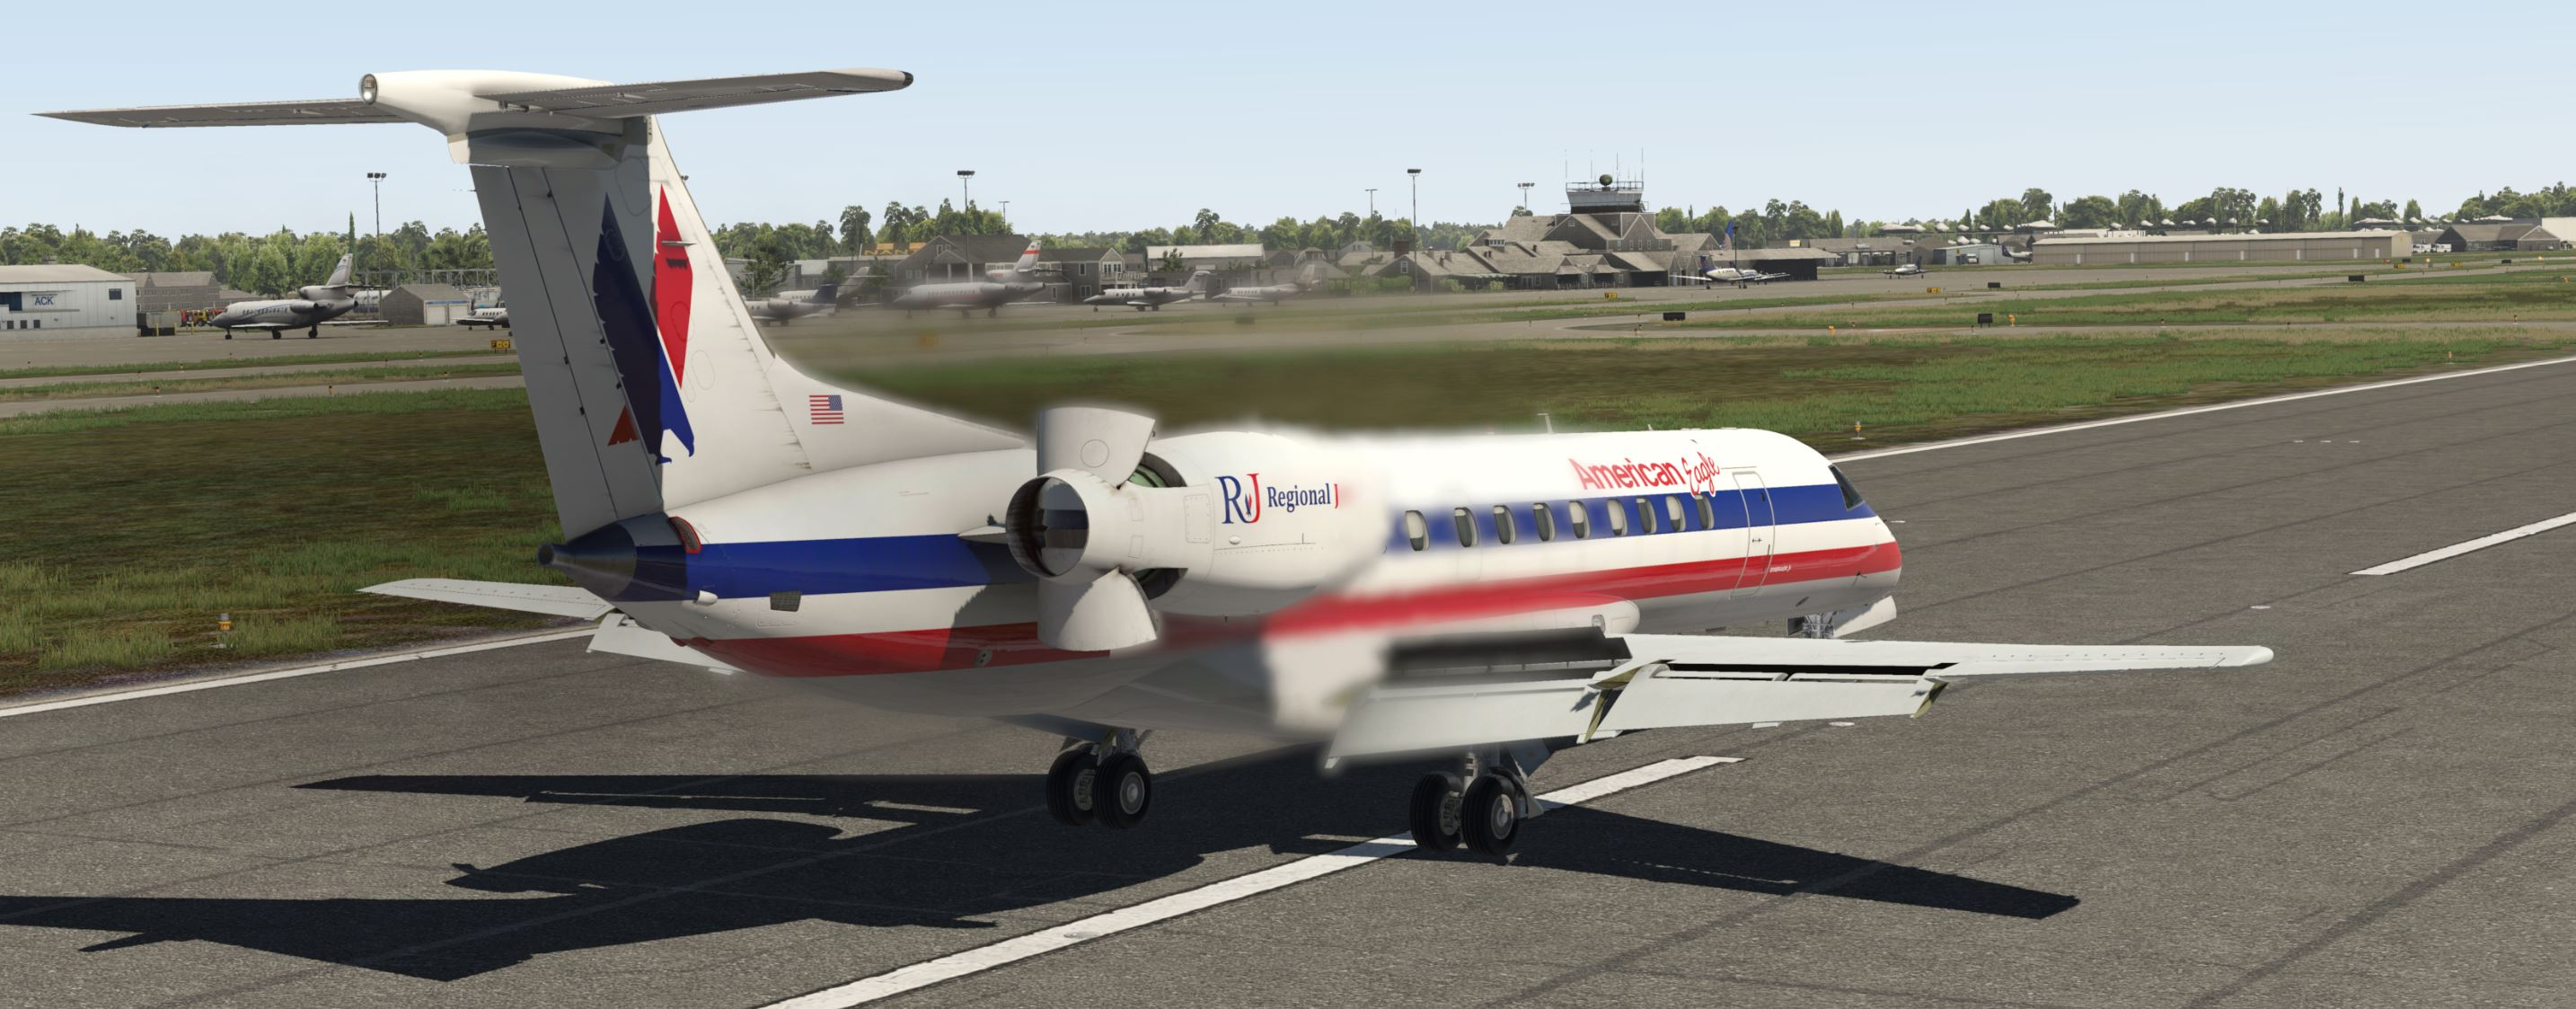 X-Plane Releases Thread (2019) - Flight Sims - Mudspike Forums